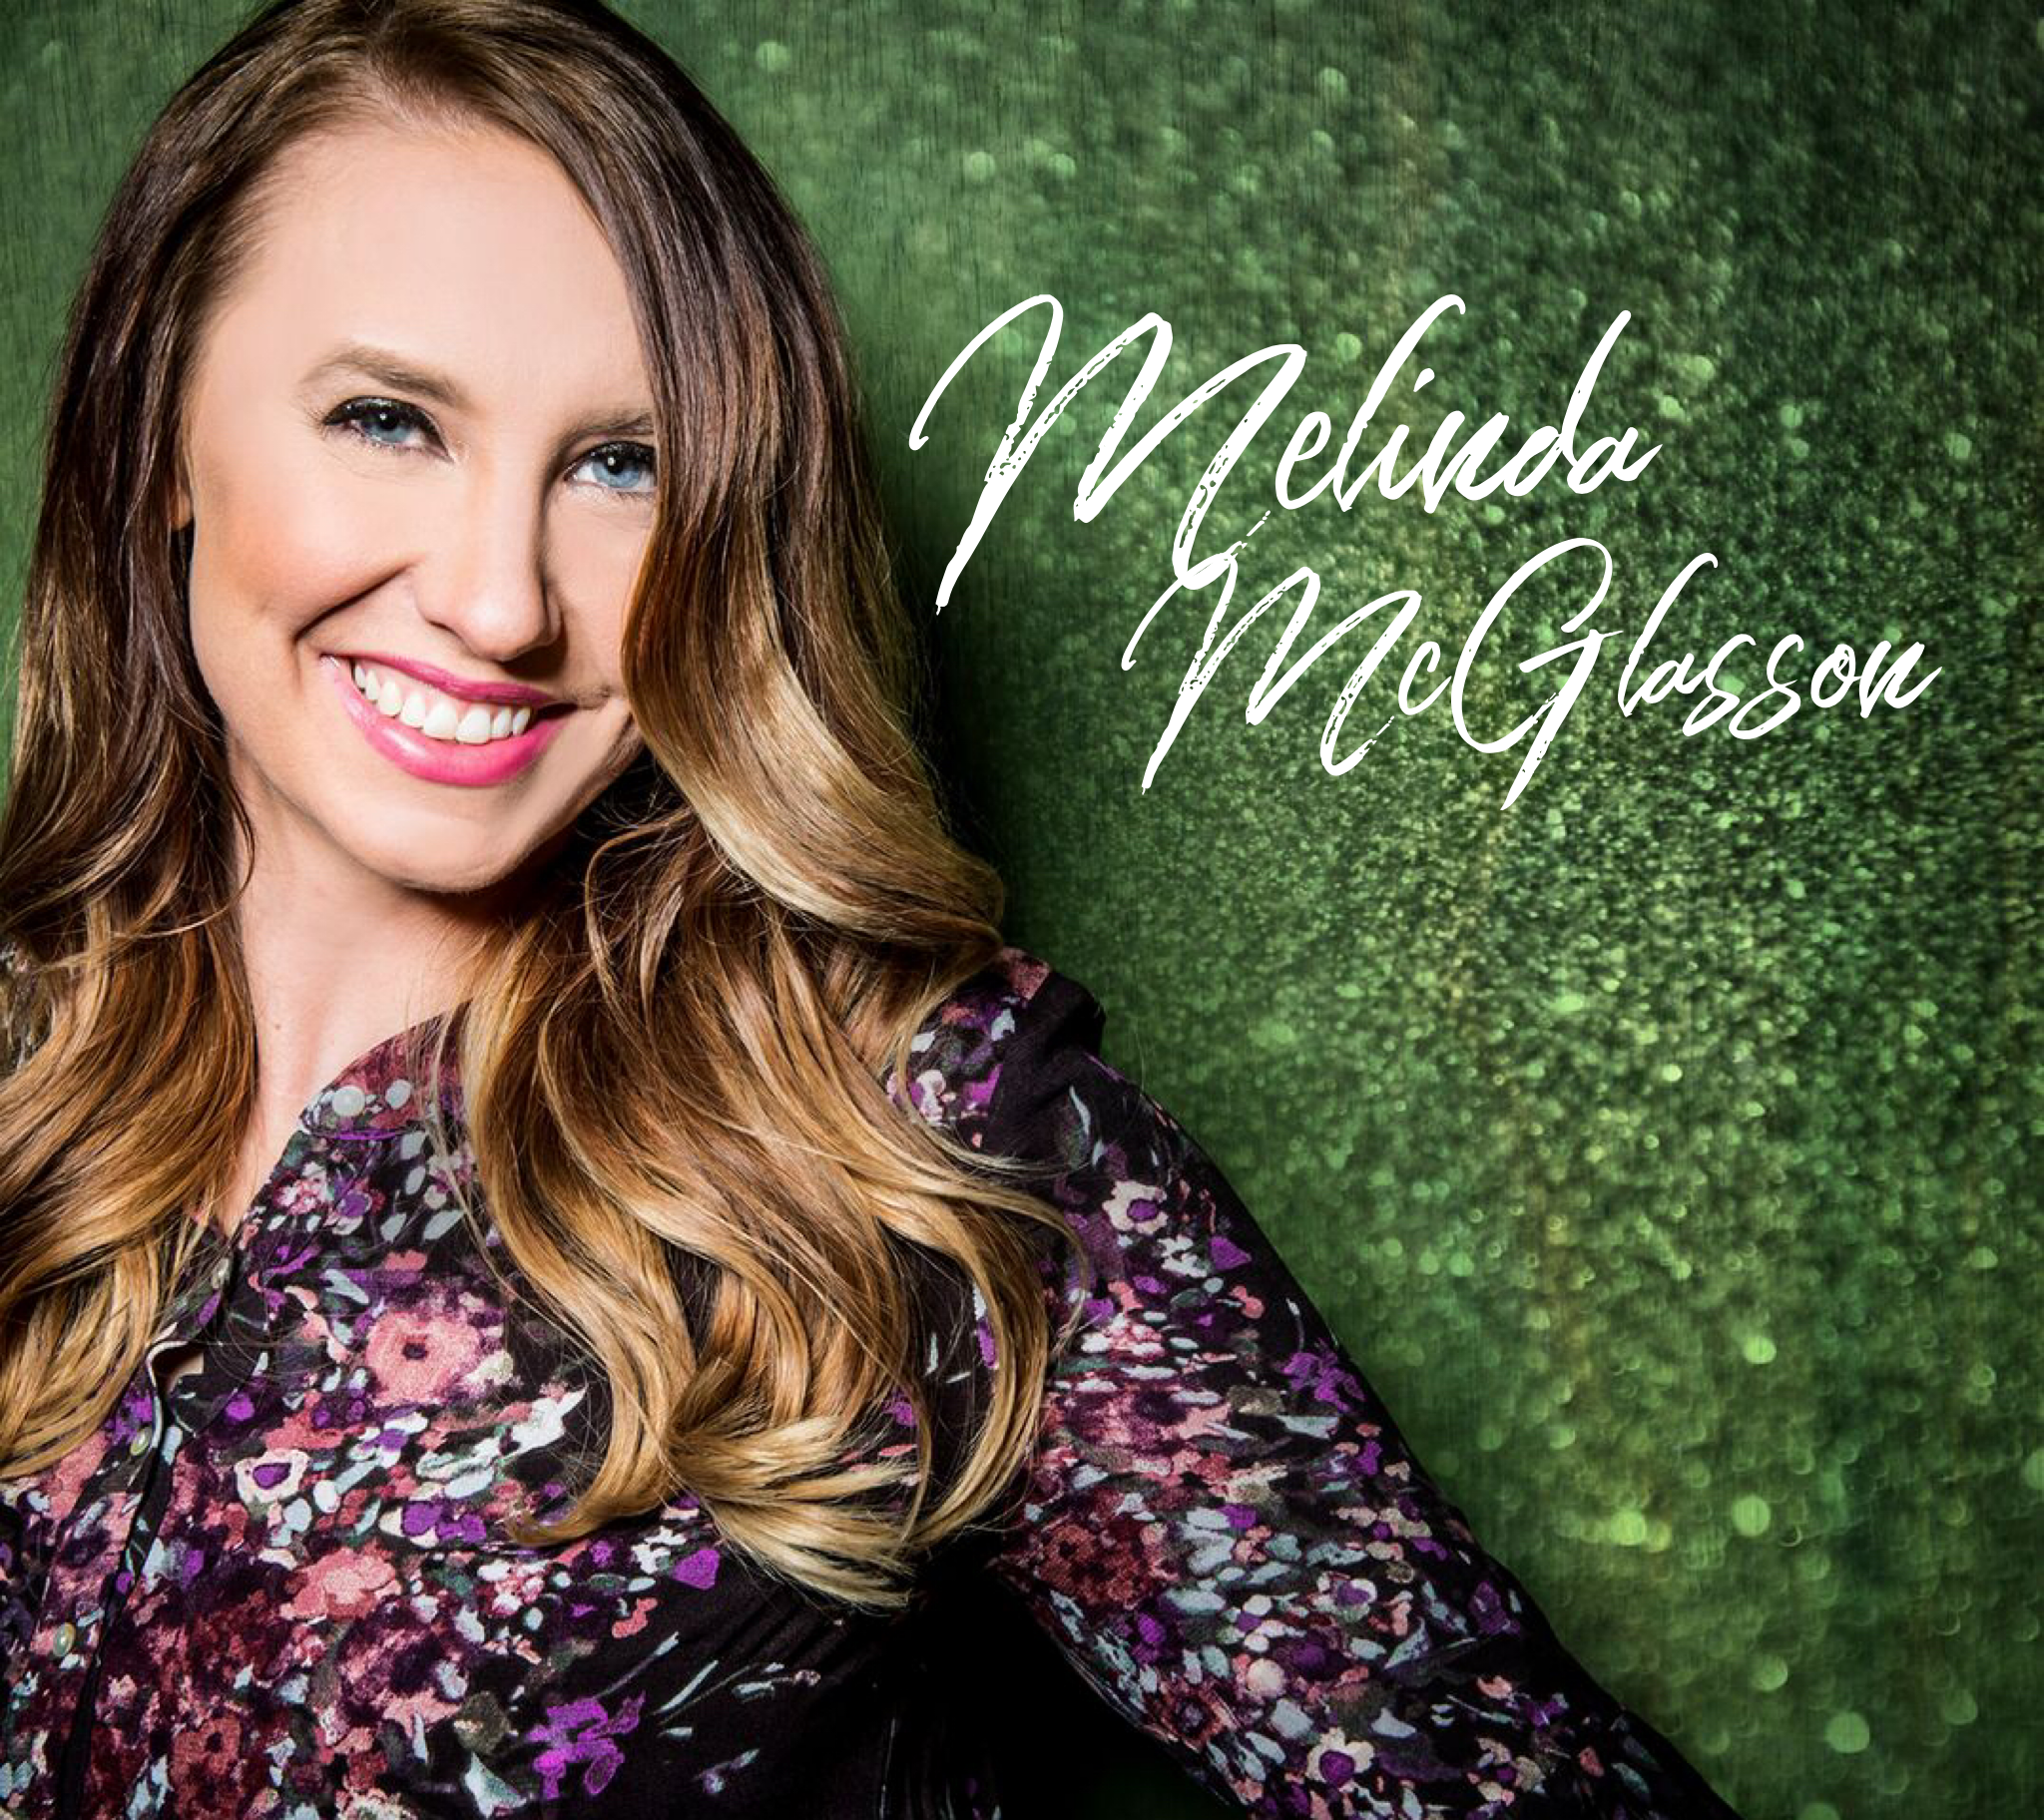 MELINDA MCGLASSON CELEBRATES NEW EP WITH RELEASE CONCERT